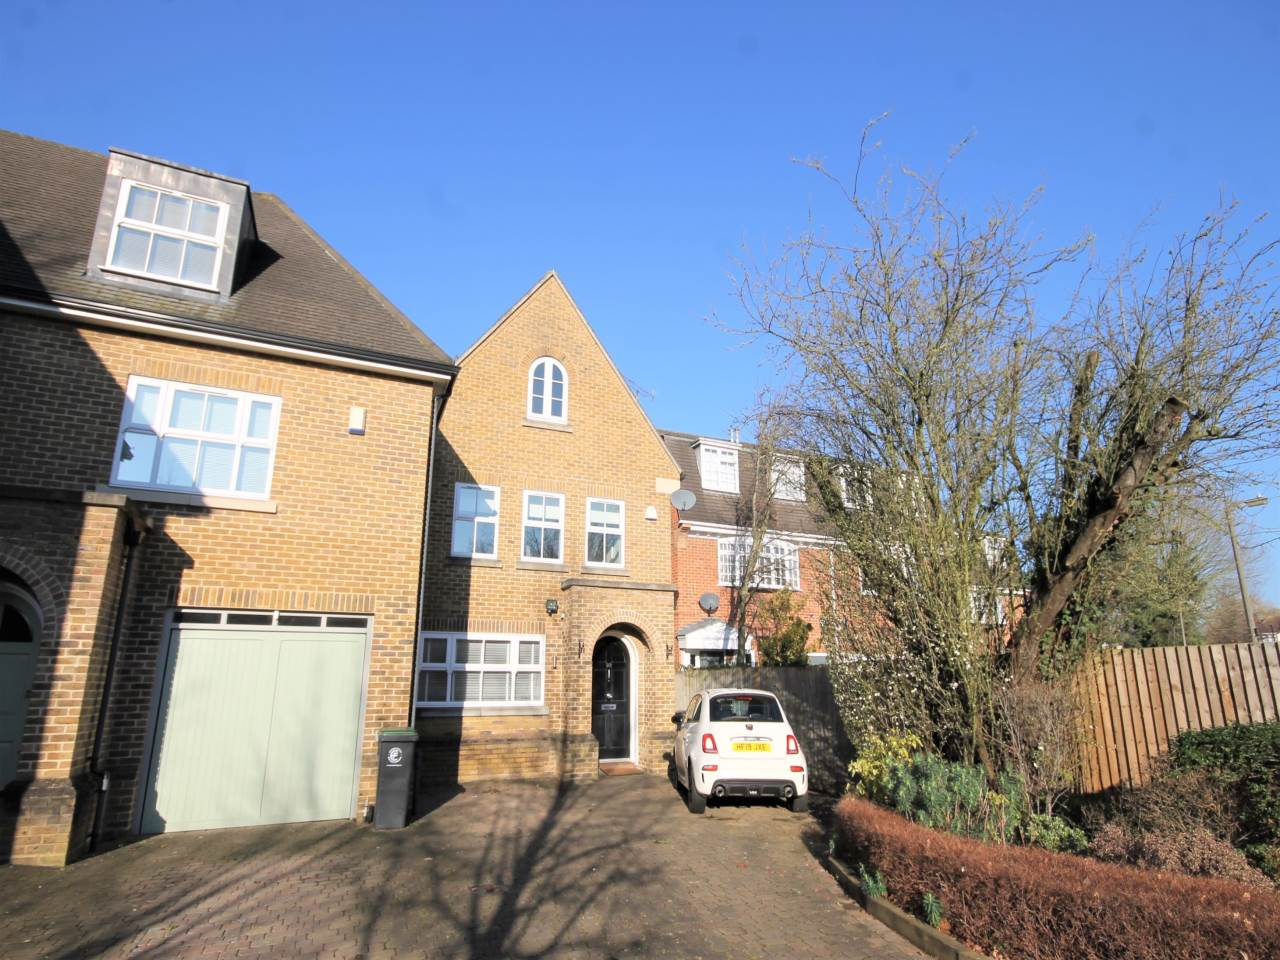 4 bed house to rent in Loughton, IG10